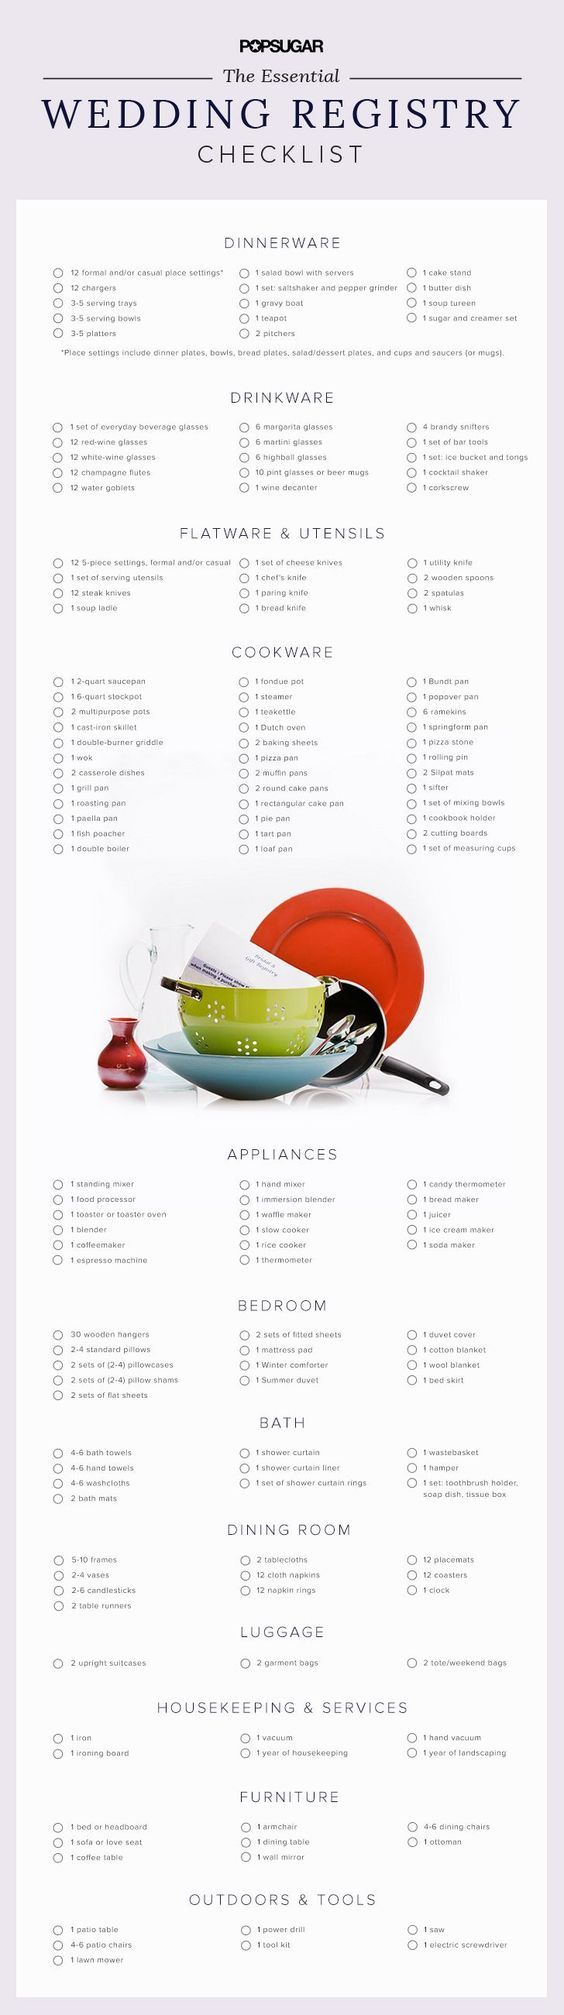 Where Can You Register For Wedding Gifts: Best 25+ Wedding Registry Checklist Ideas On Pinterest